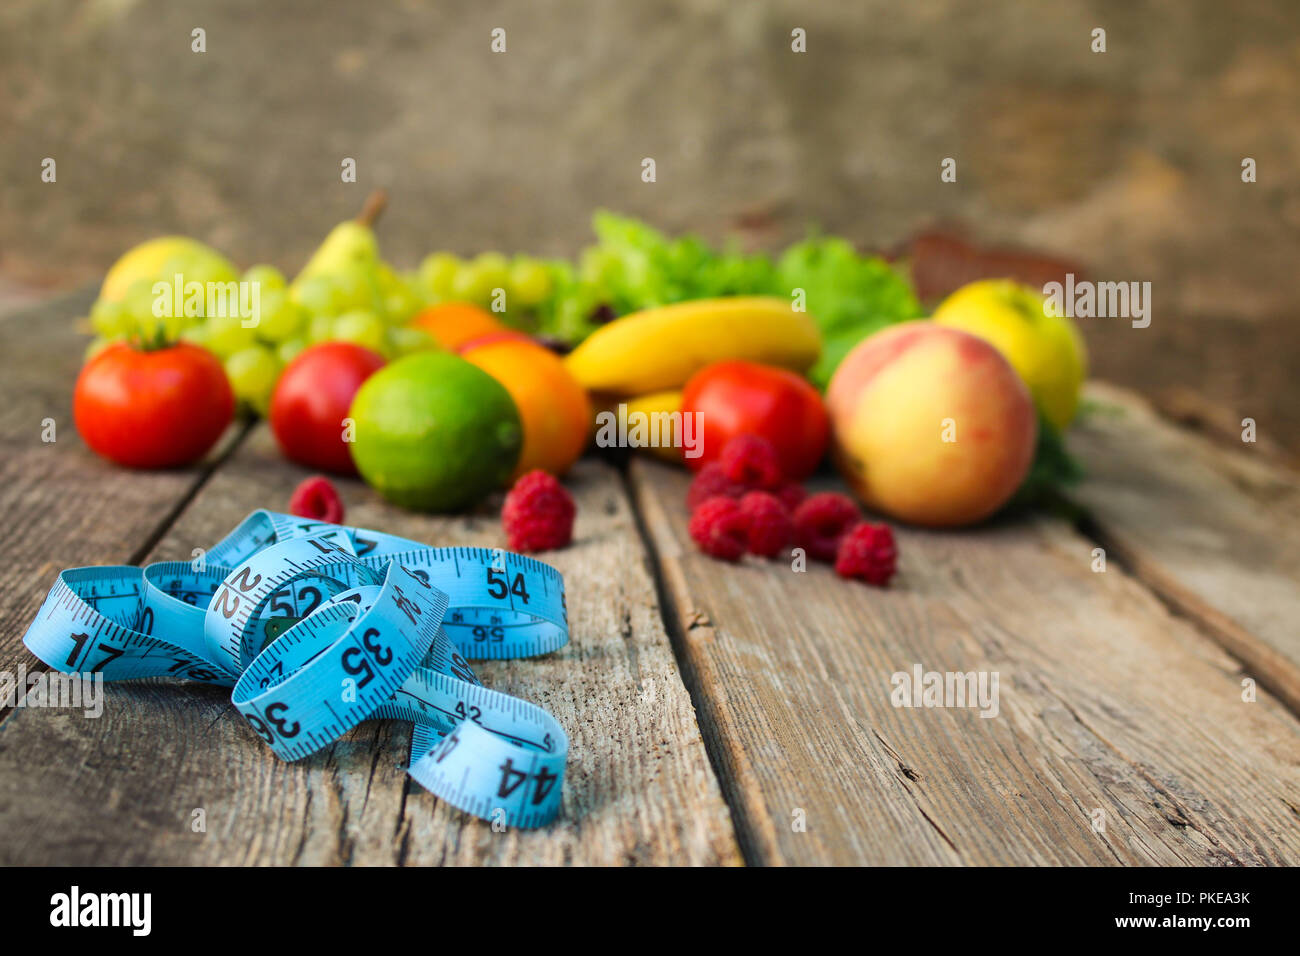 Fruits, vegetables, measure tape on wooden background. - Stock Image